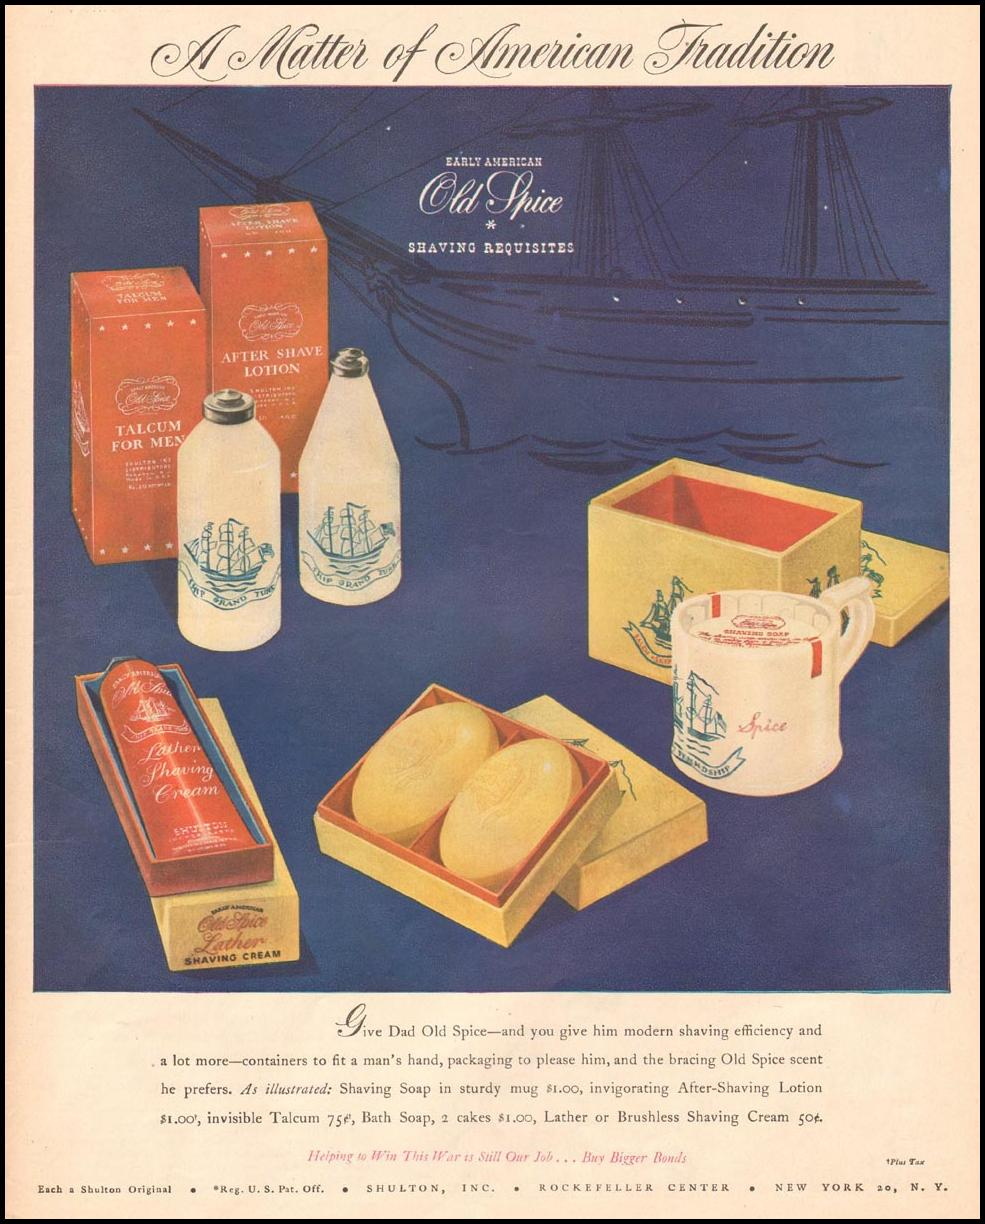 OLD SPICE FOR MEN LIFE 06/04/1945